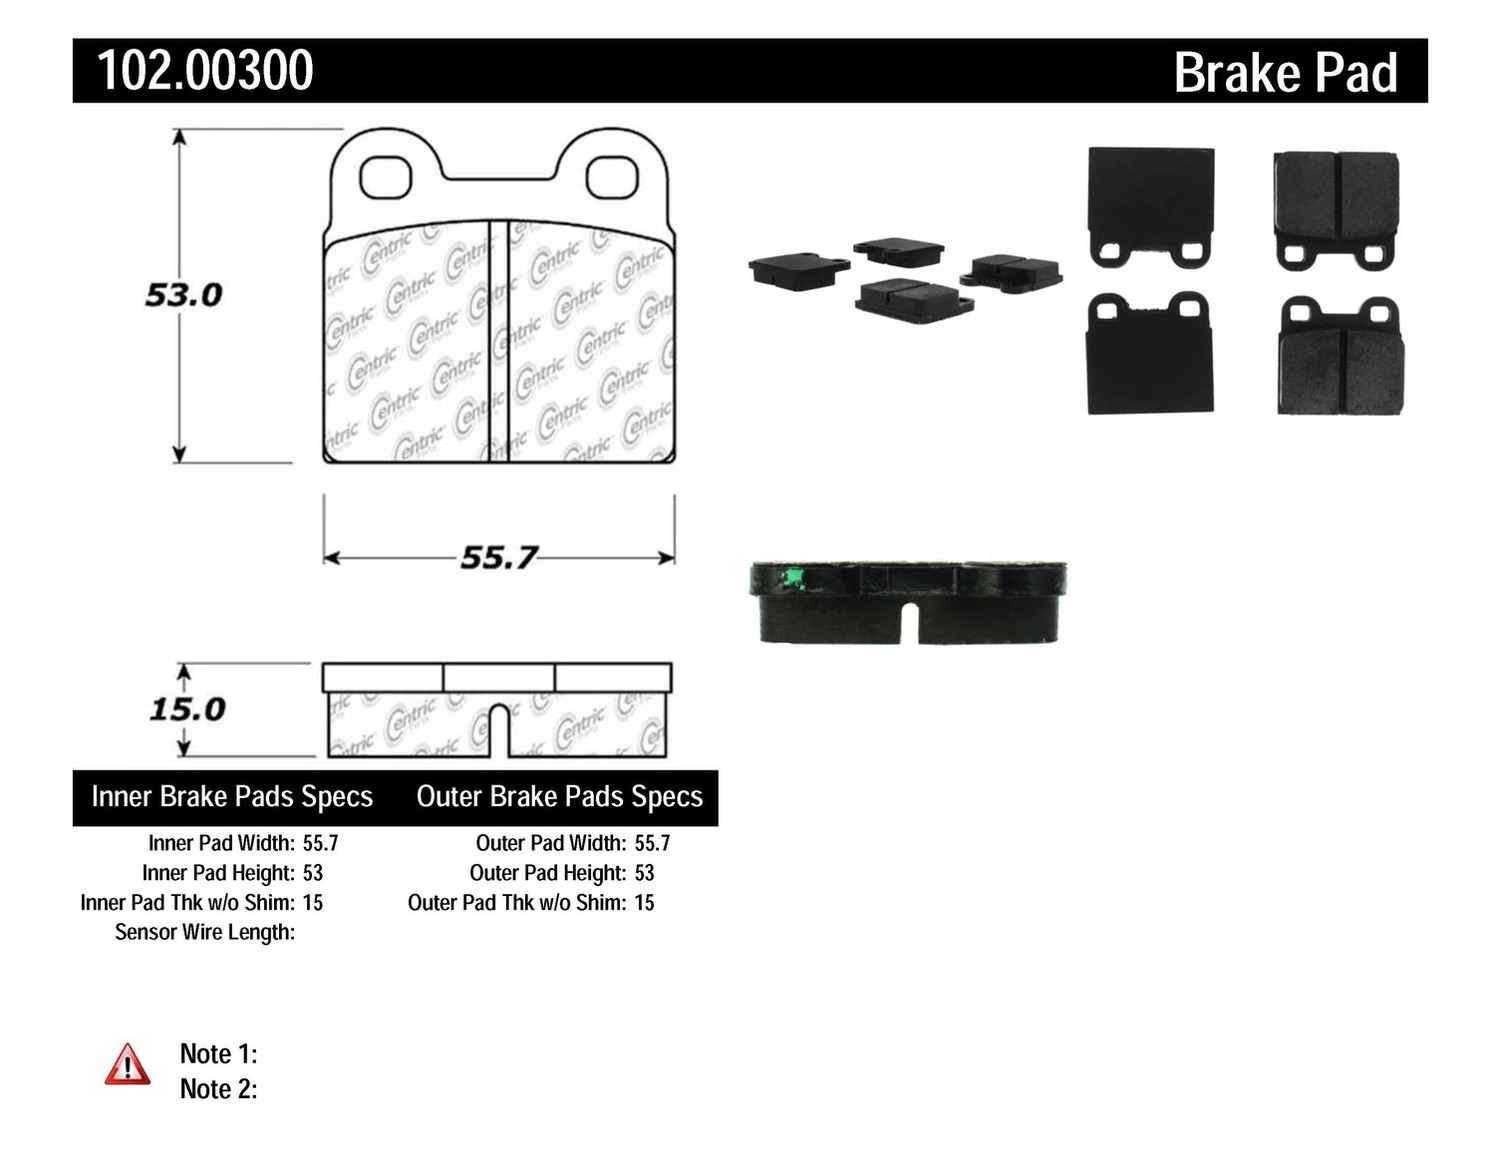 C-TEK BY CENTRIC - C-TEK Metallic Brake Pads-Preferred (Front) - CTK 102.00300